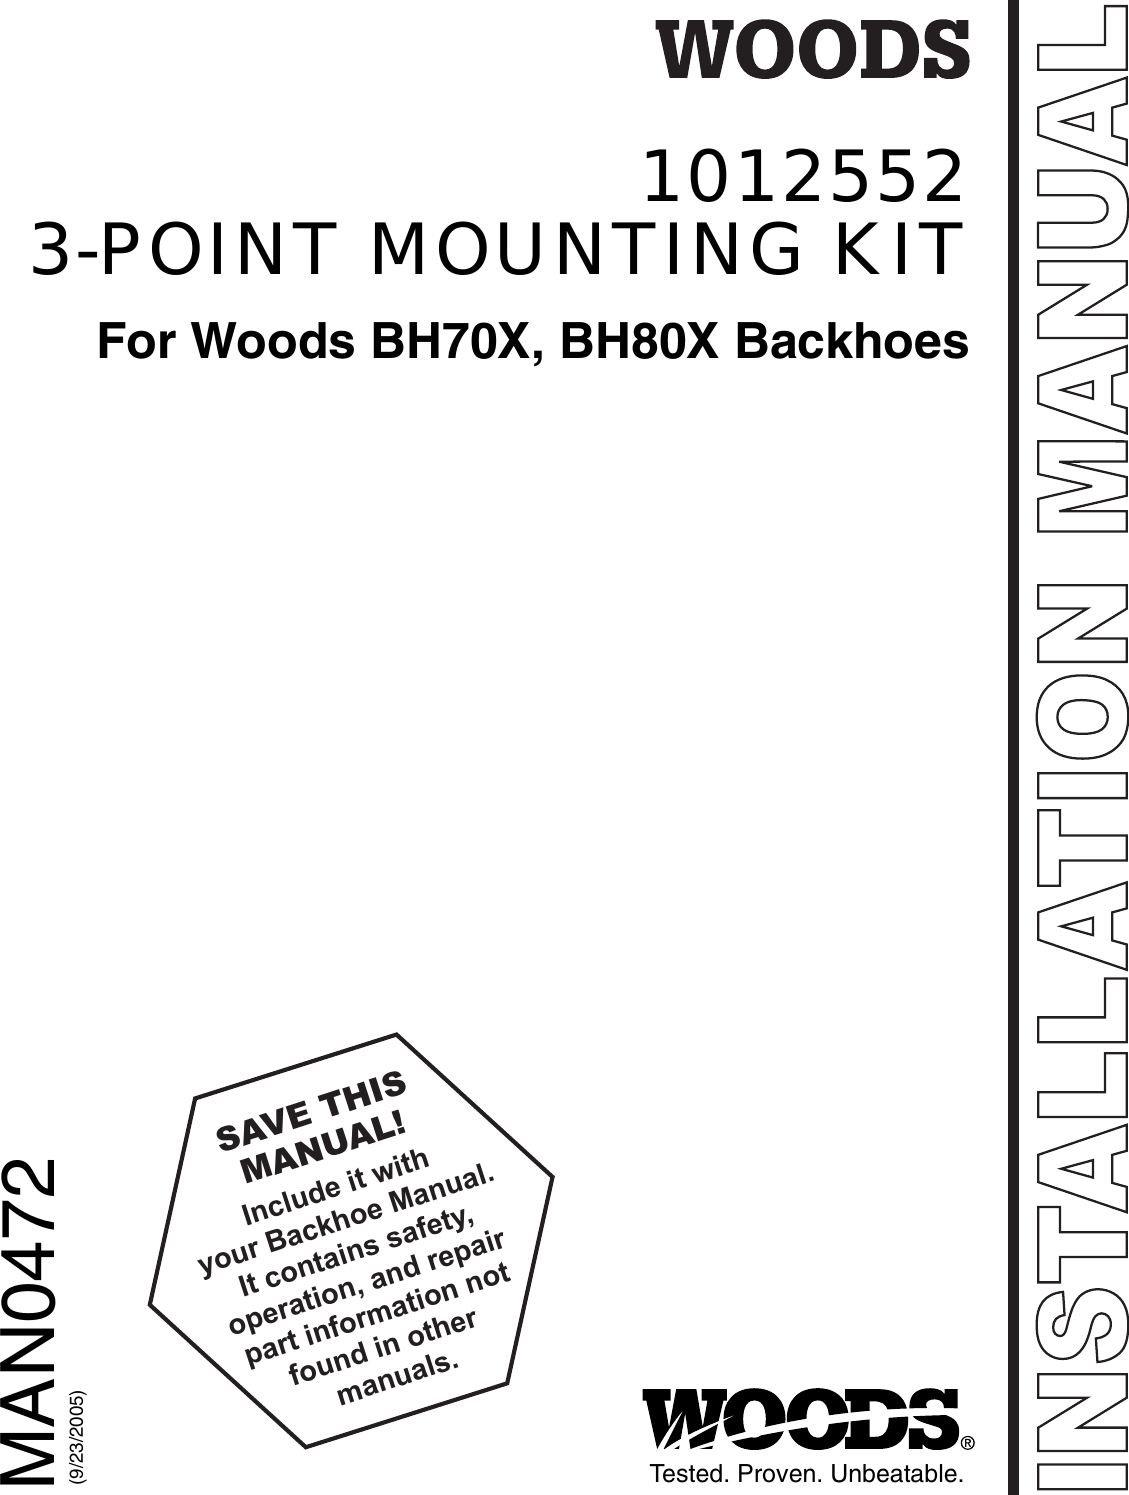 Woods Equipment Bh70X Users Manual 1012552 3 Point